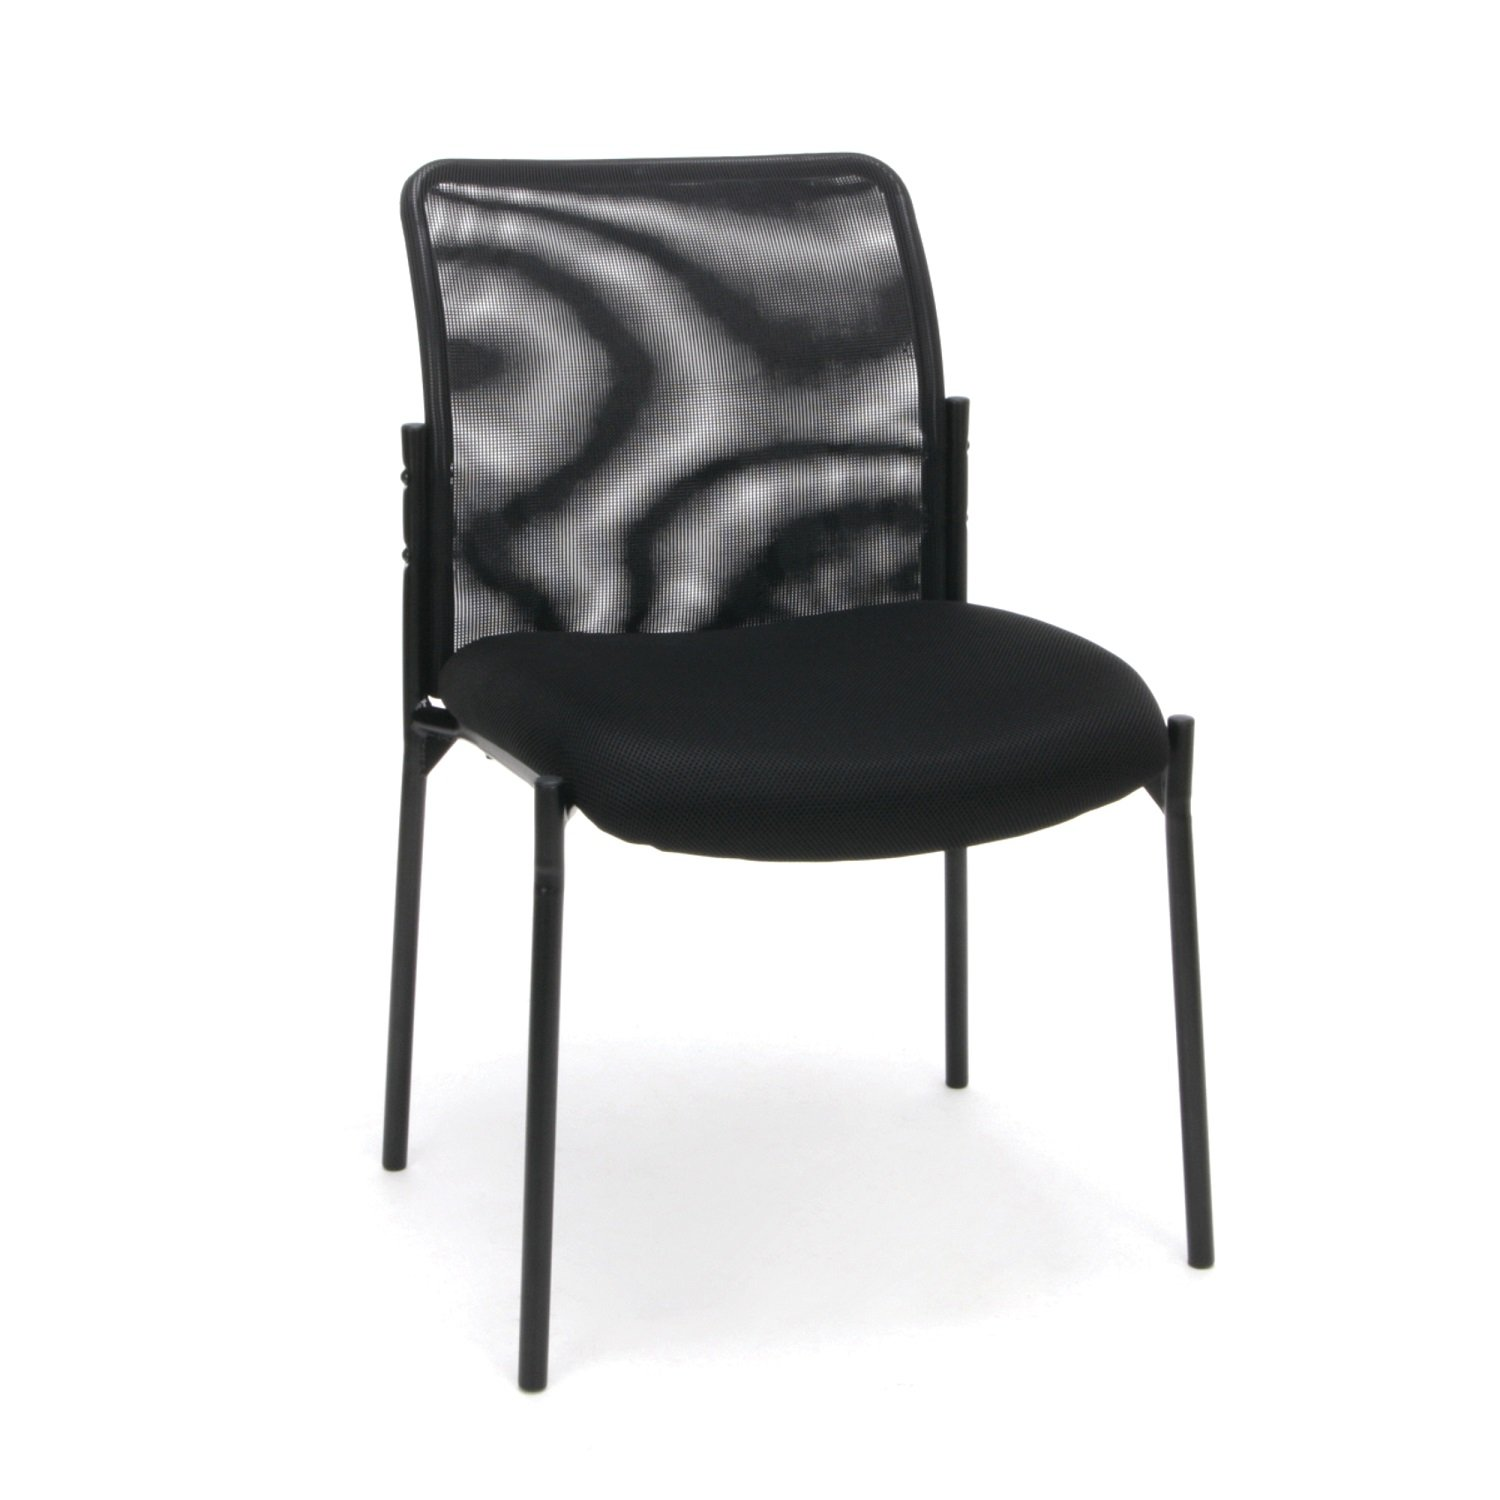 Essentials Mesh Upholstered Stacking Armless Guest/Reception Chair - Modern Stackable Office Chair